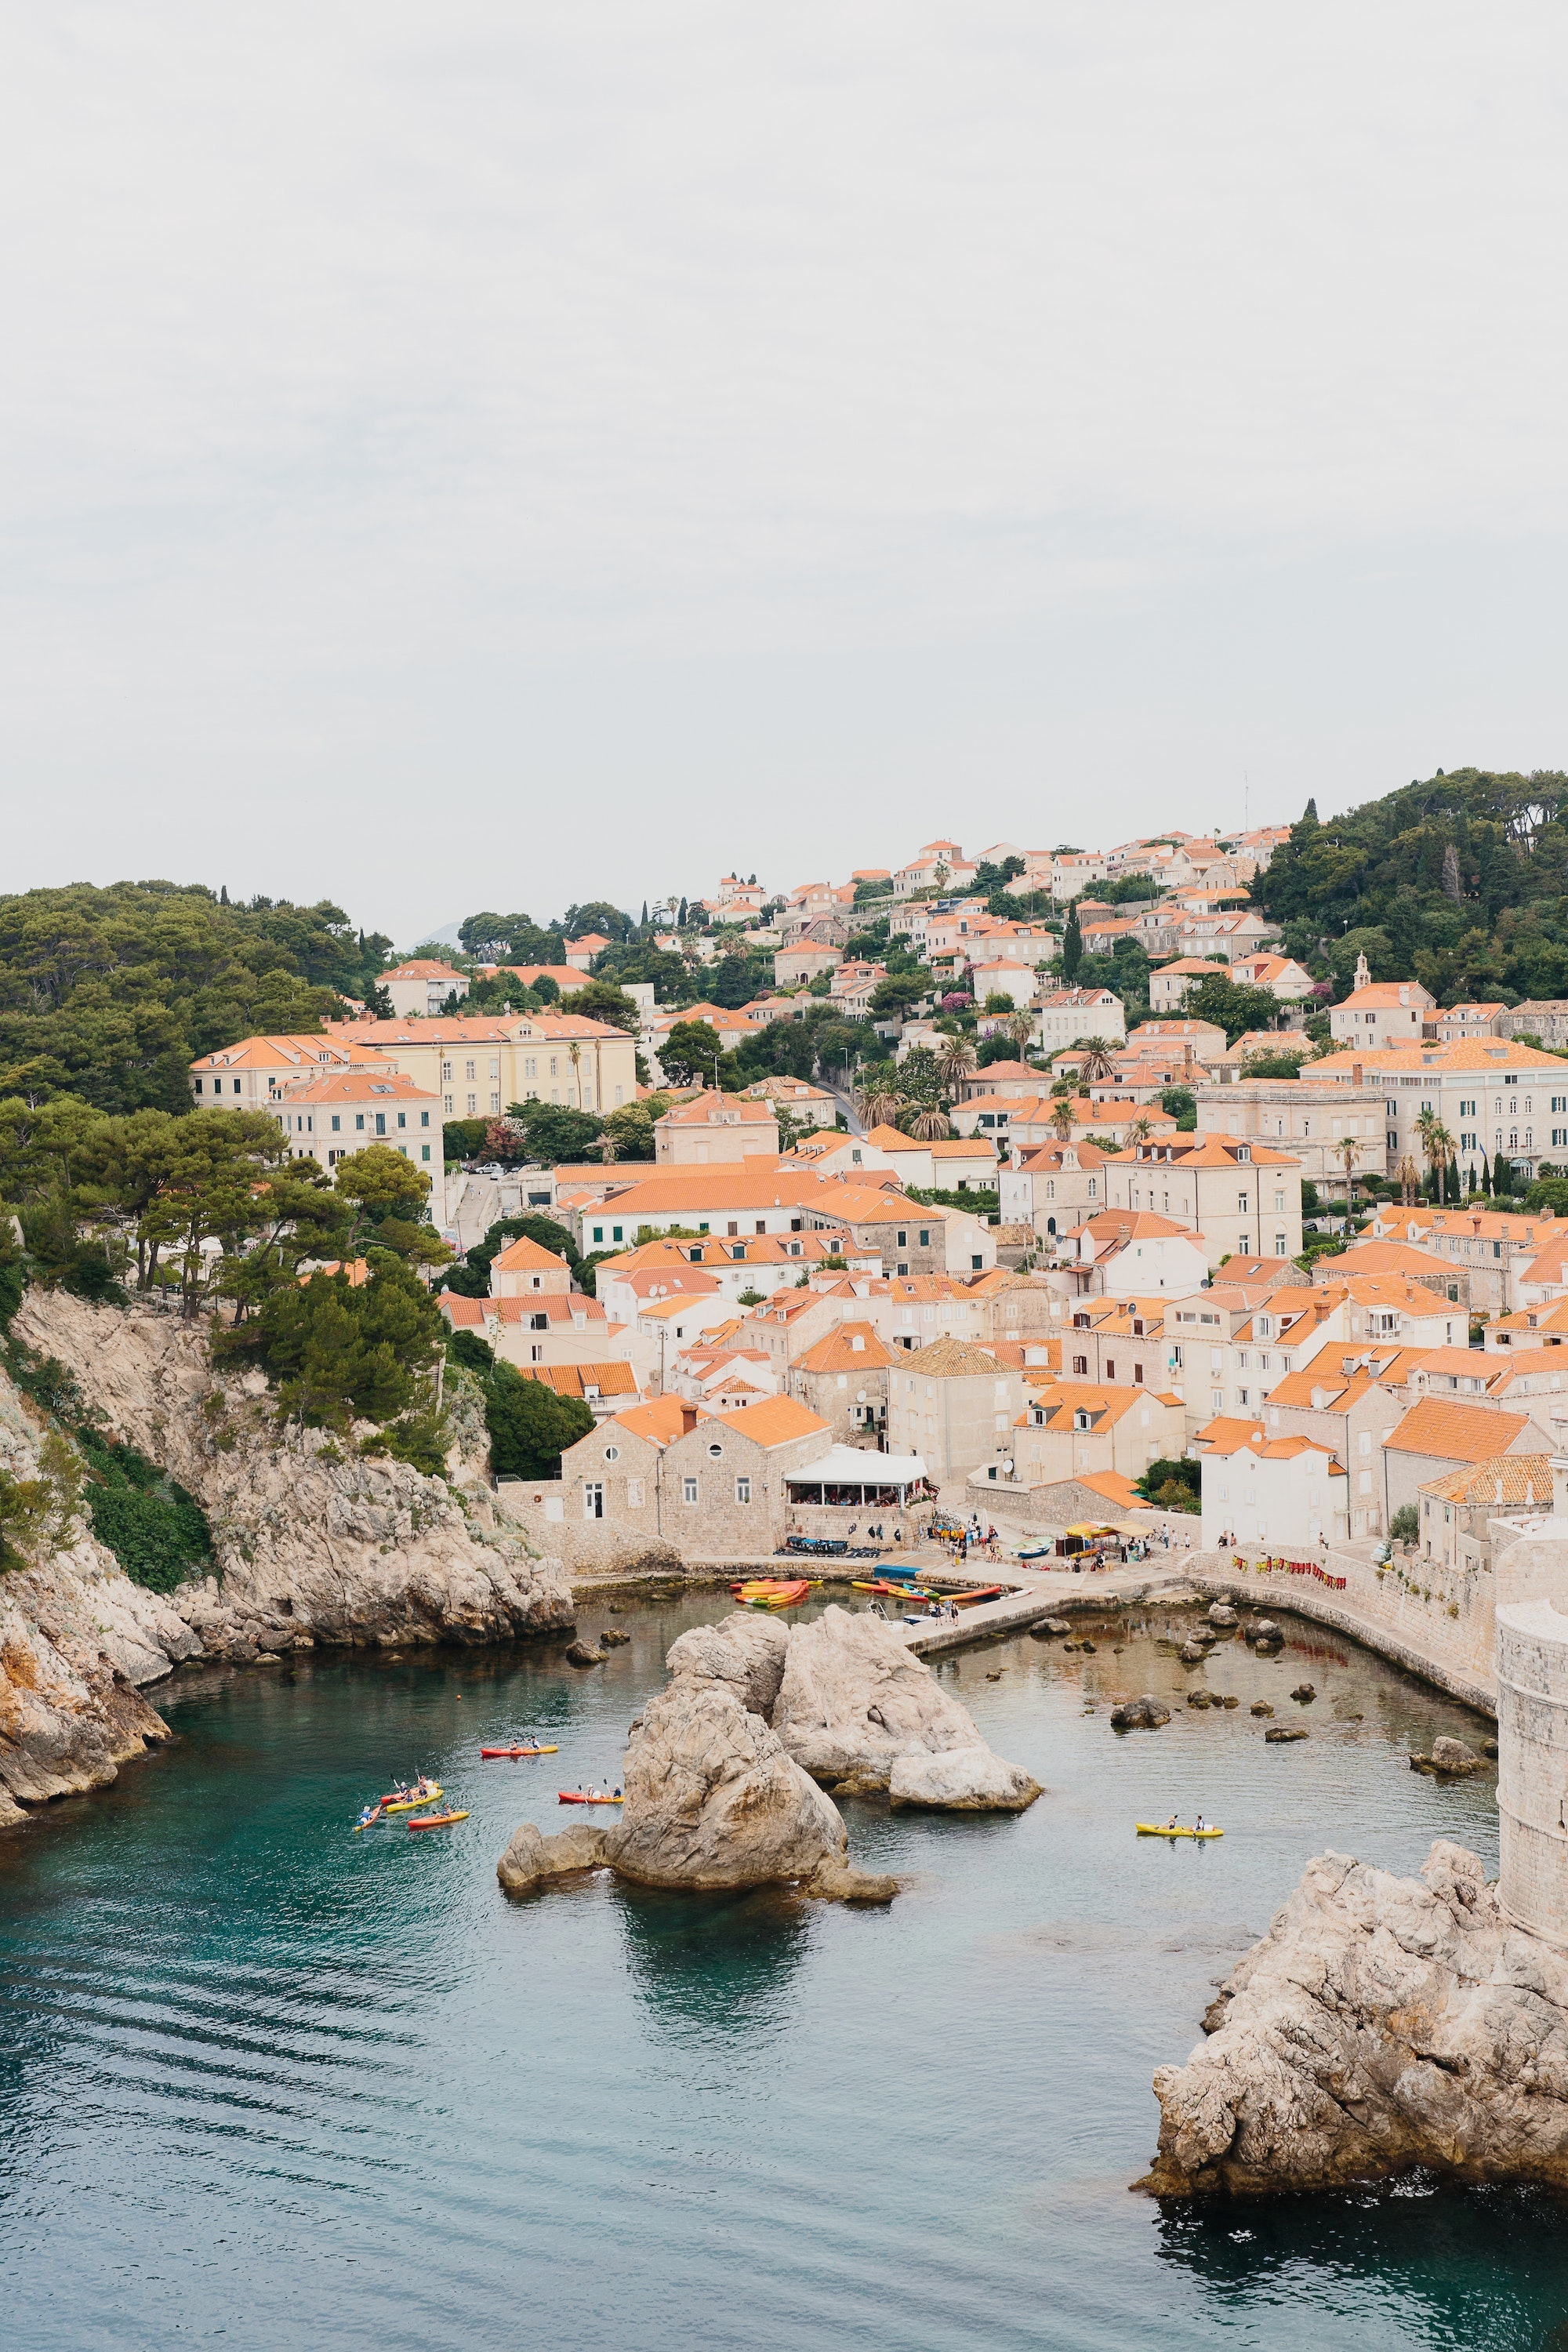 View of Dubrovnik